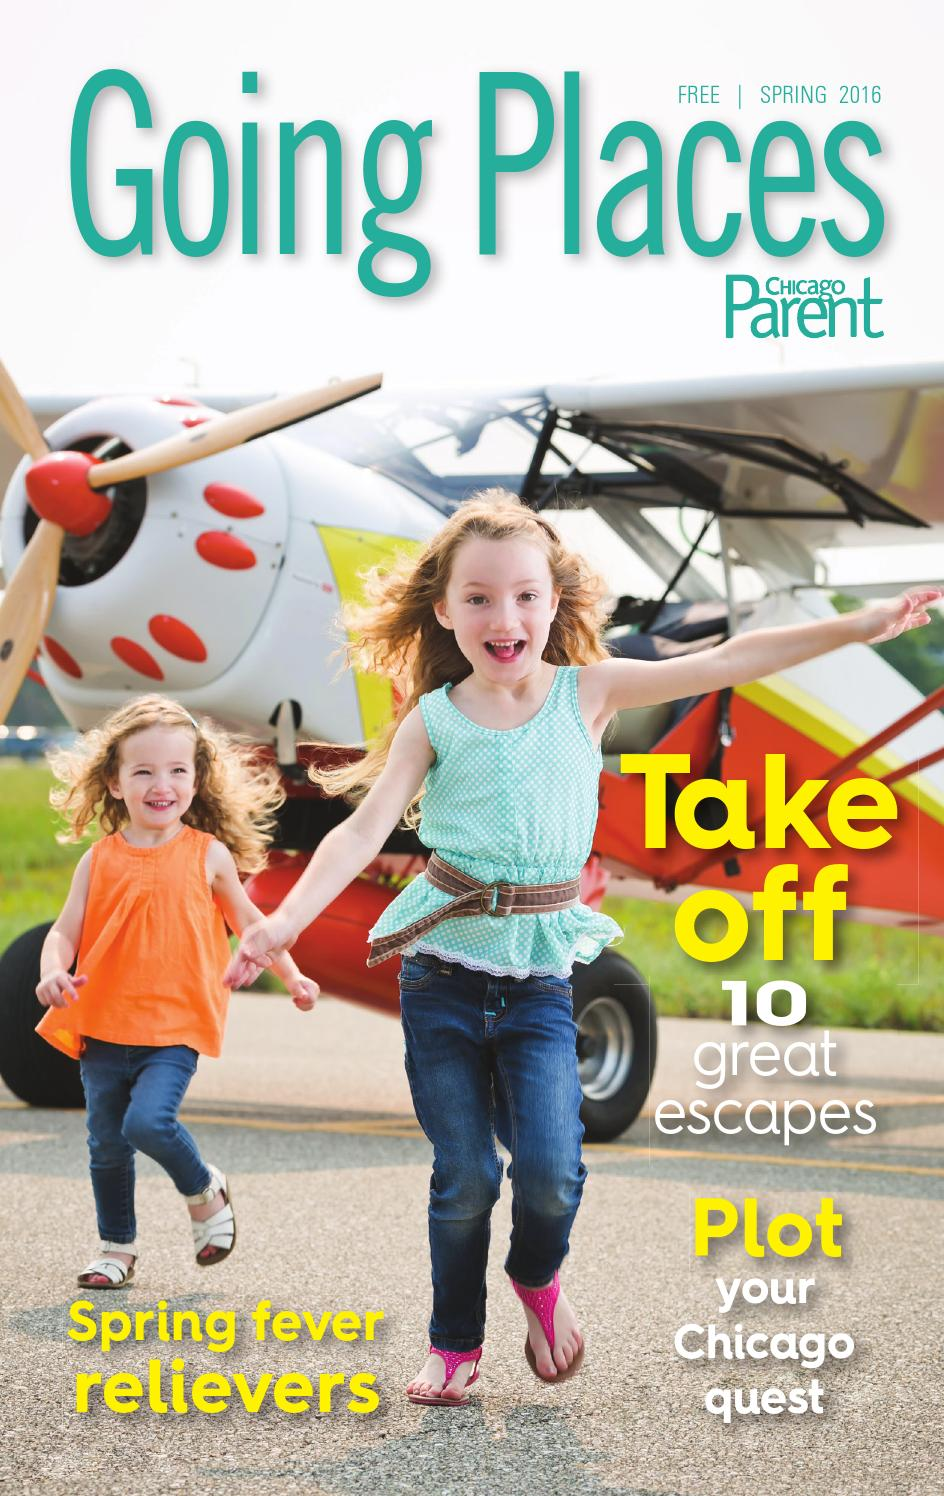 Going Places Spring 2016 by Chicago Parent - issuu